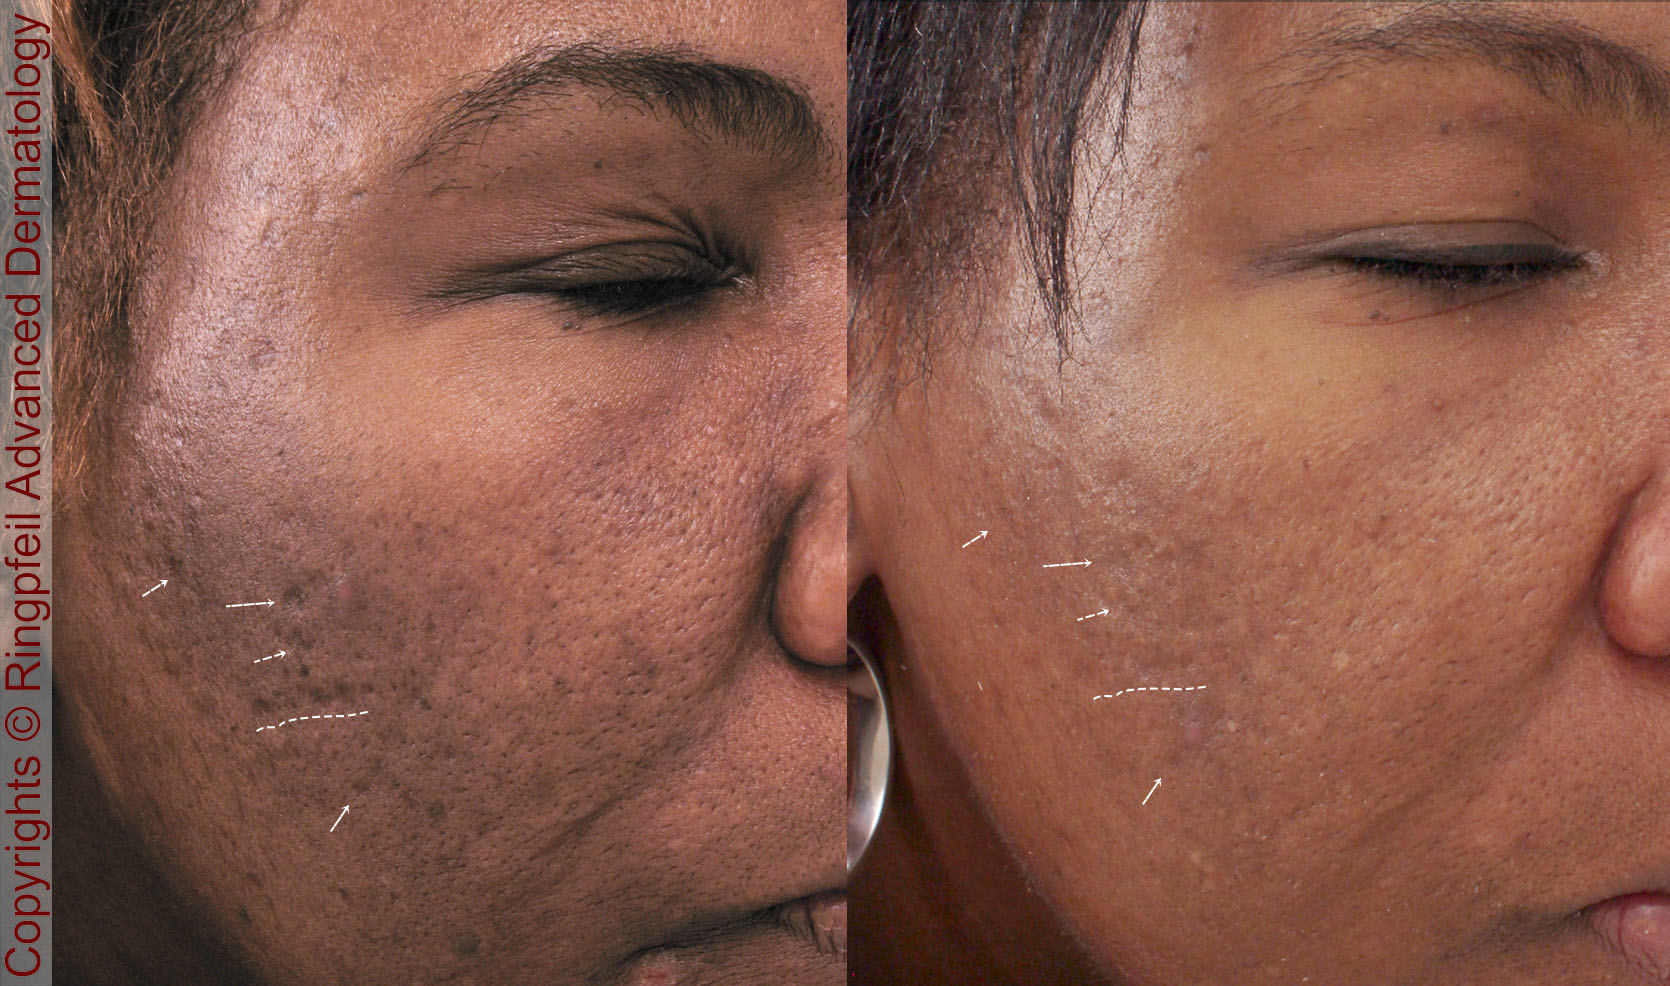 Fractionated RF Microneedling and PRP with Vivace is Now